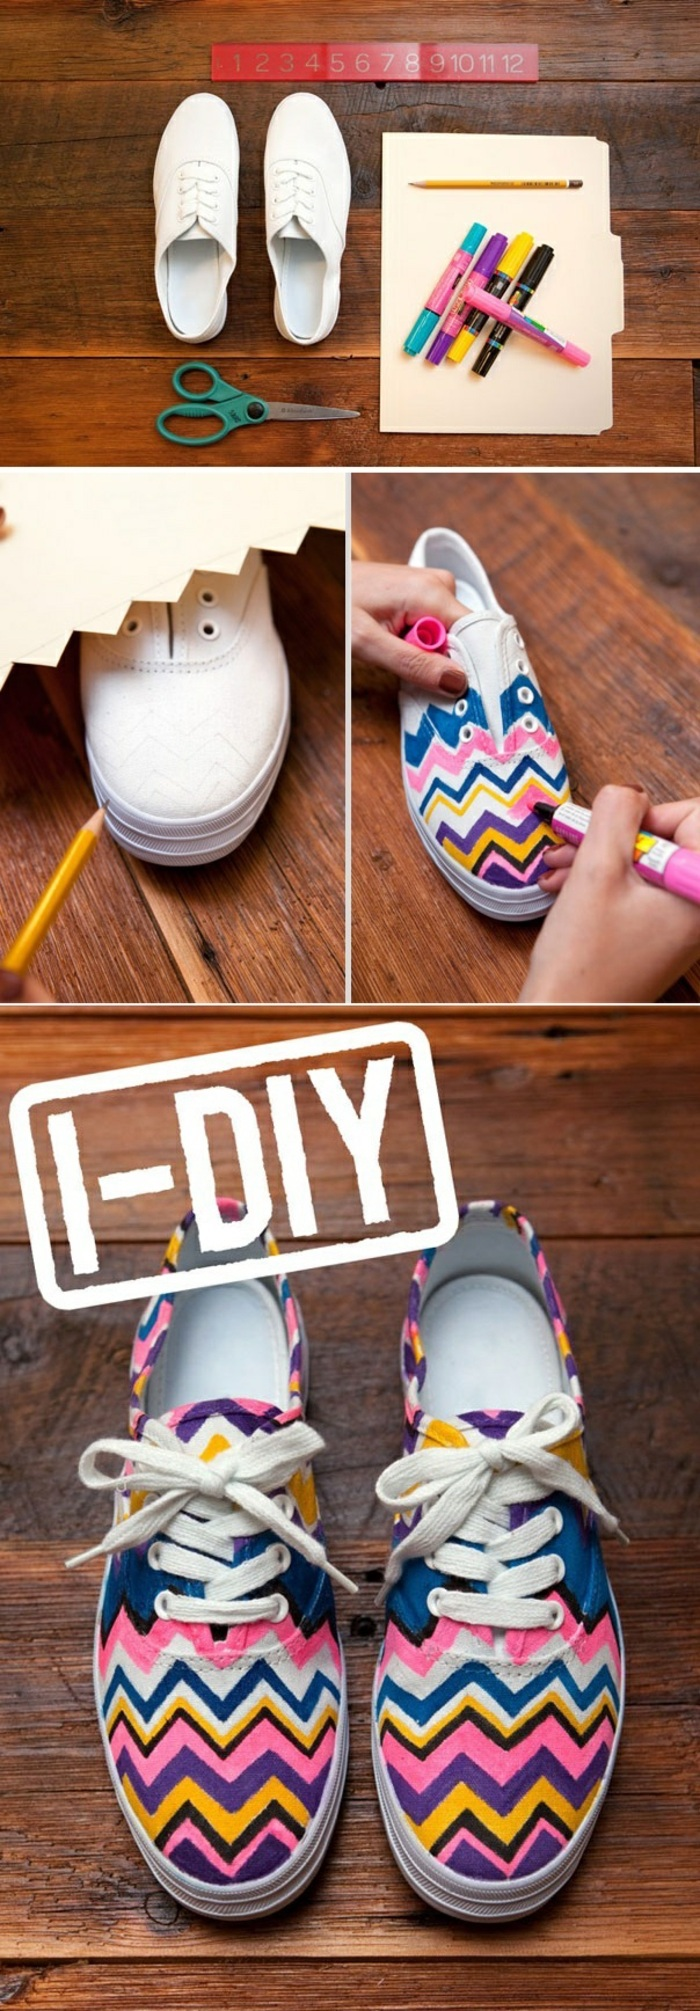 coloured sneakers, colourful markers, white sneakers, diy tutorial, step by step, craft ideas for adults